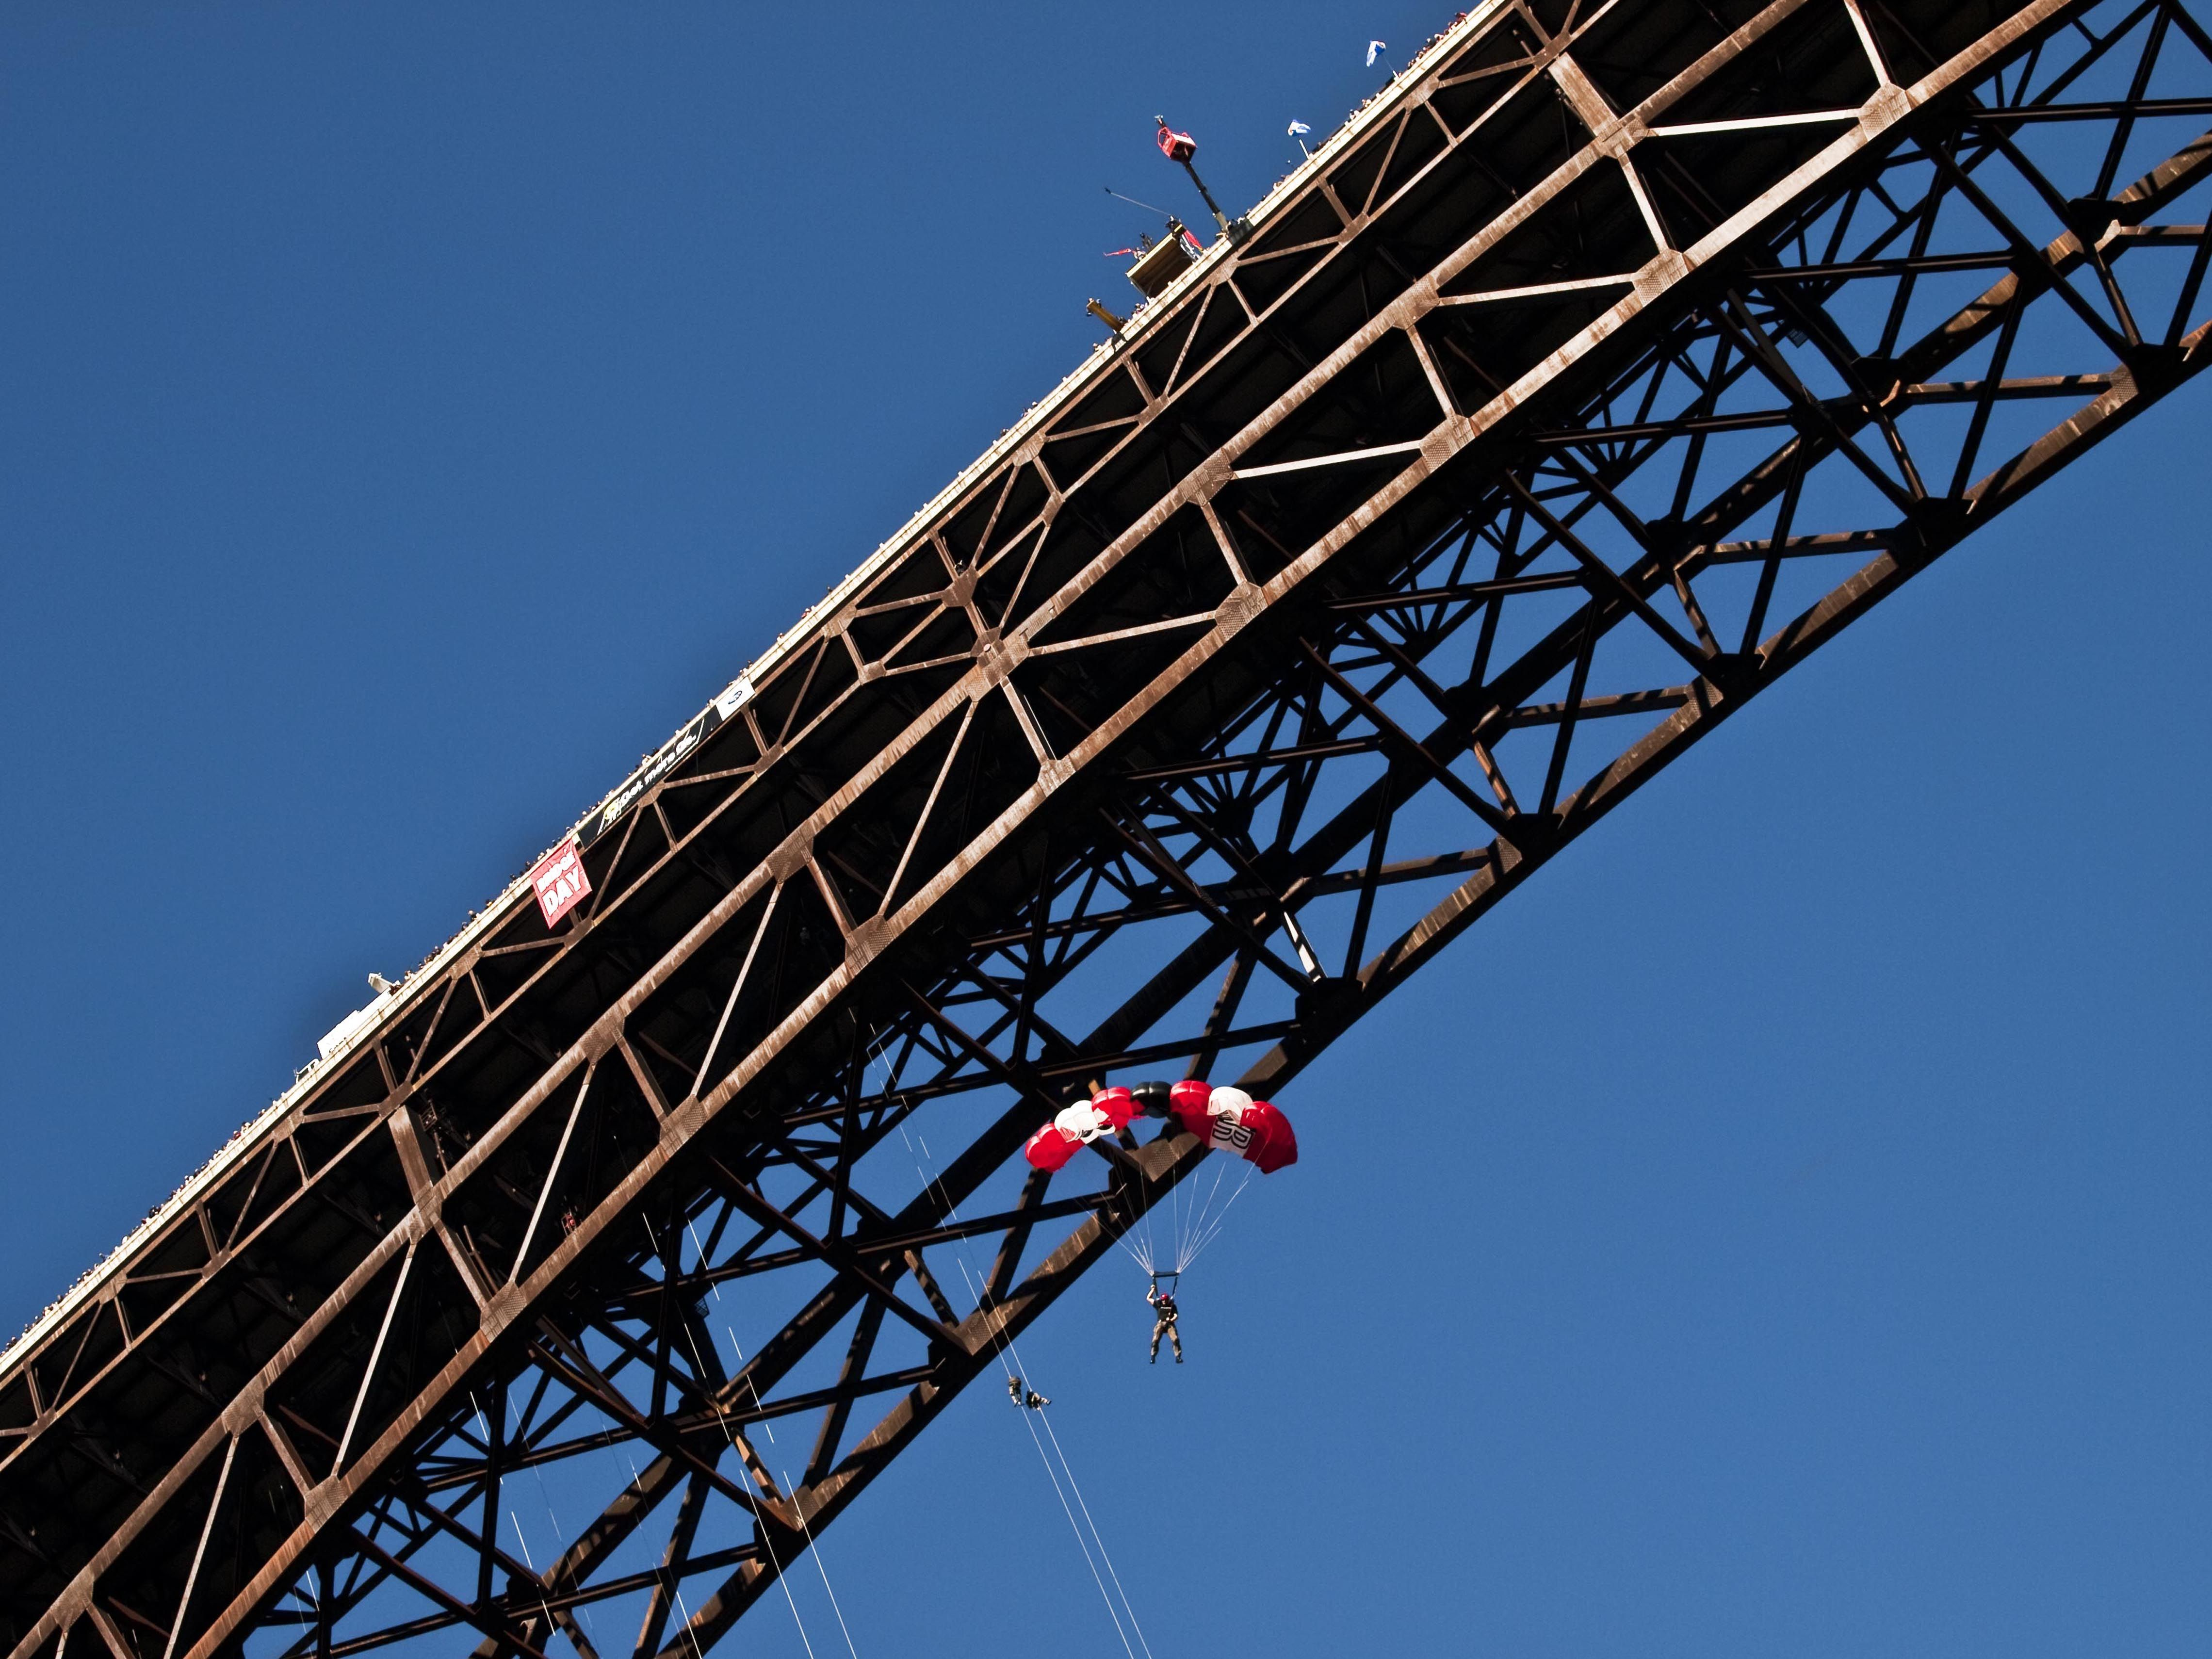 A BASE jumper takes the plunge on Bridge Day